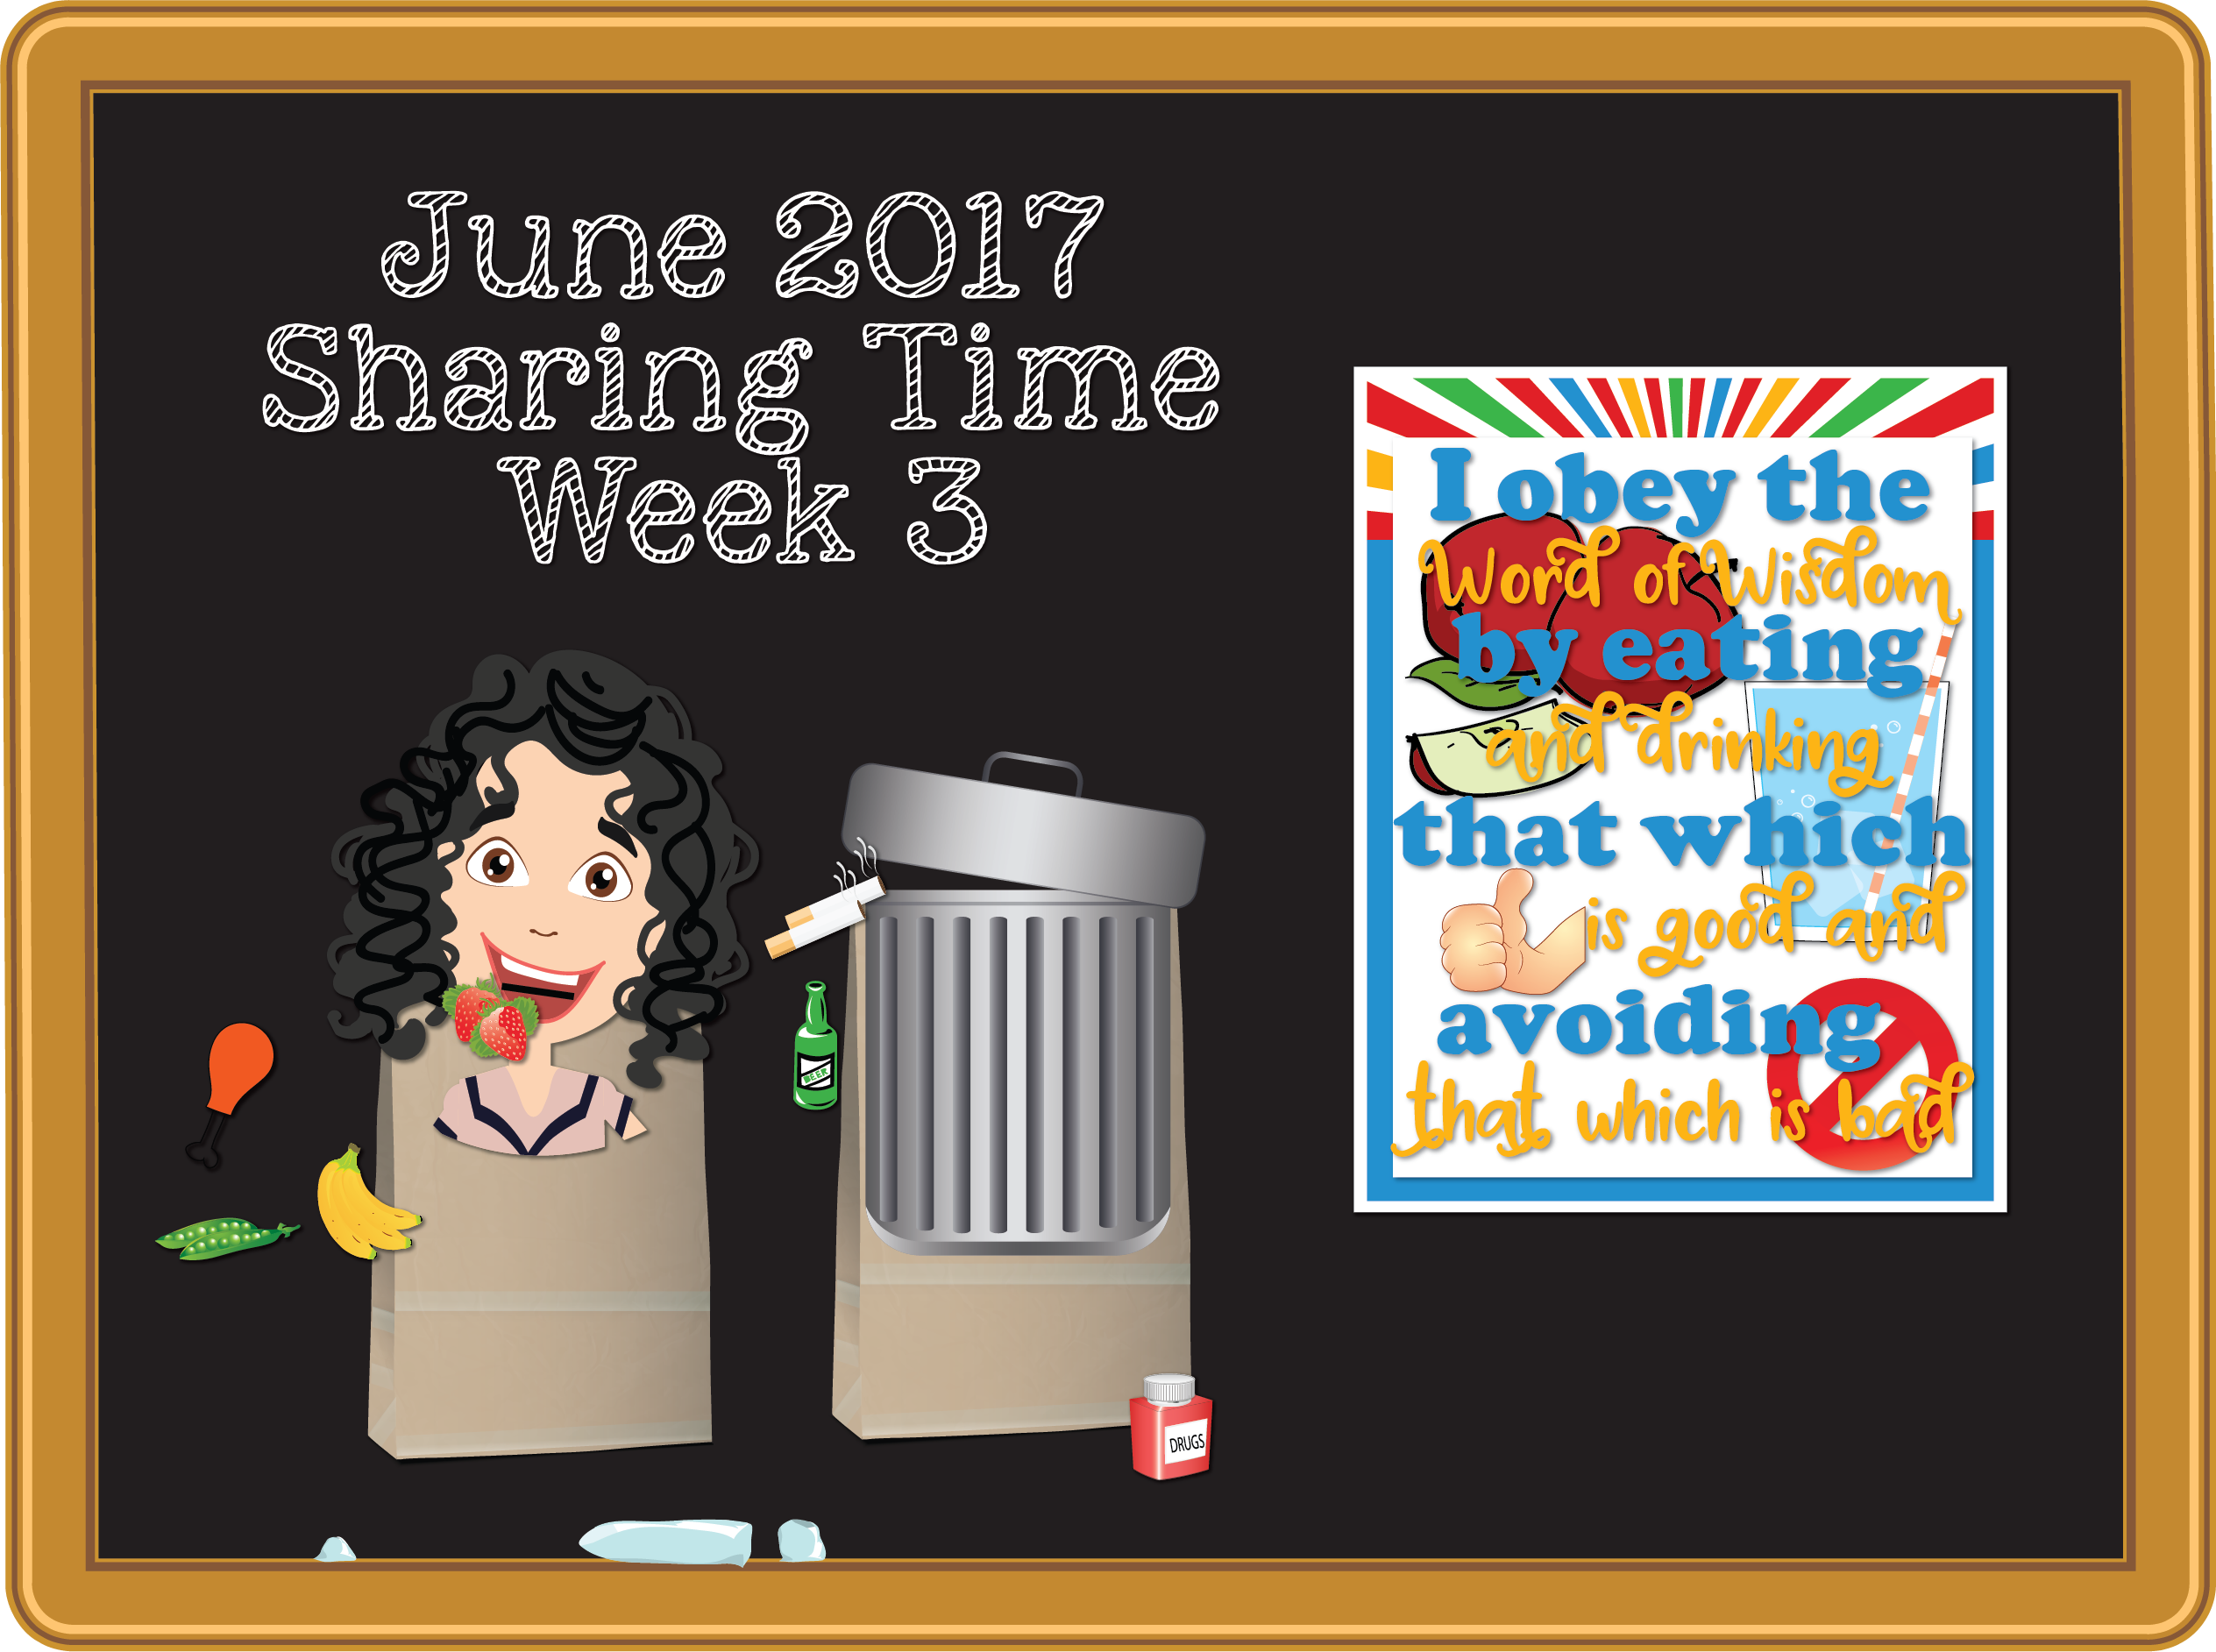 Individual lesson helps packet forJune 2017 Sharing Time Week 3: I obey the Word of Wisdom by eating and drinking that which is good and avoiding that which is bad